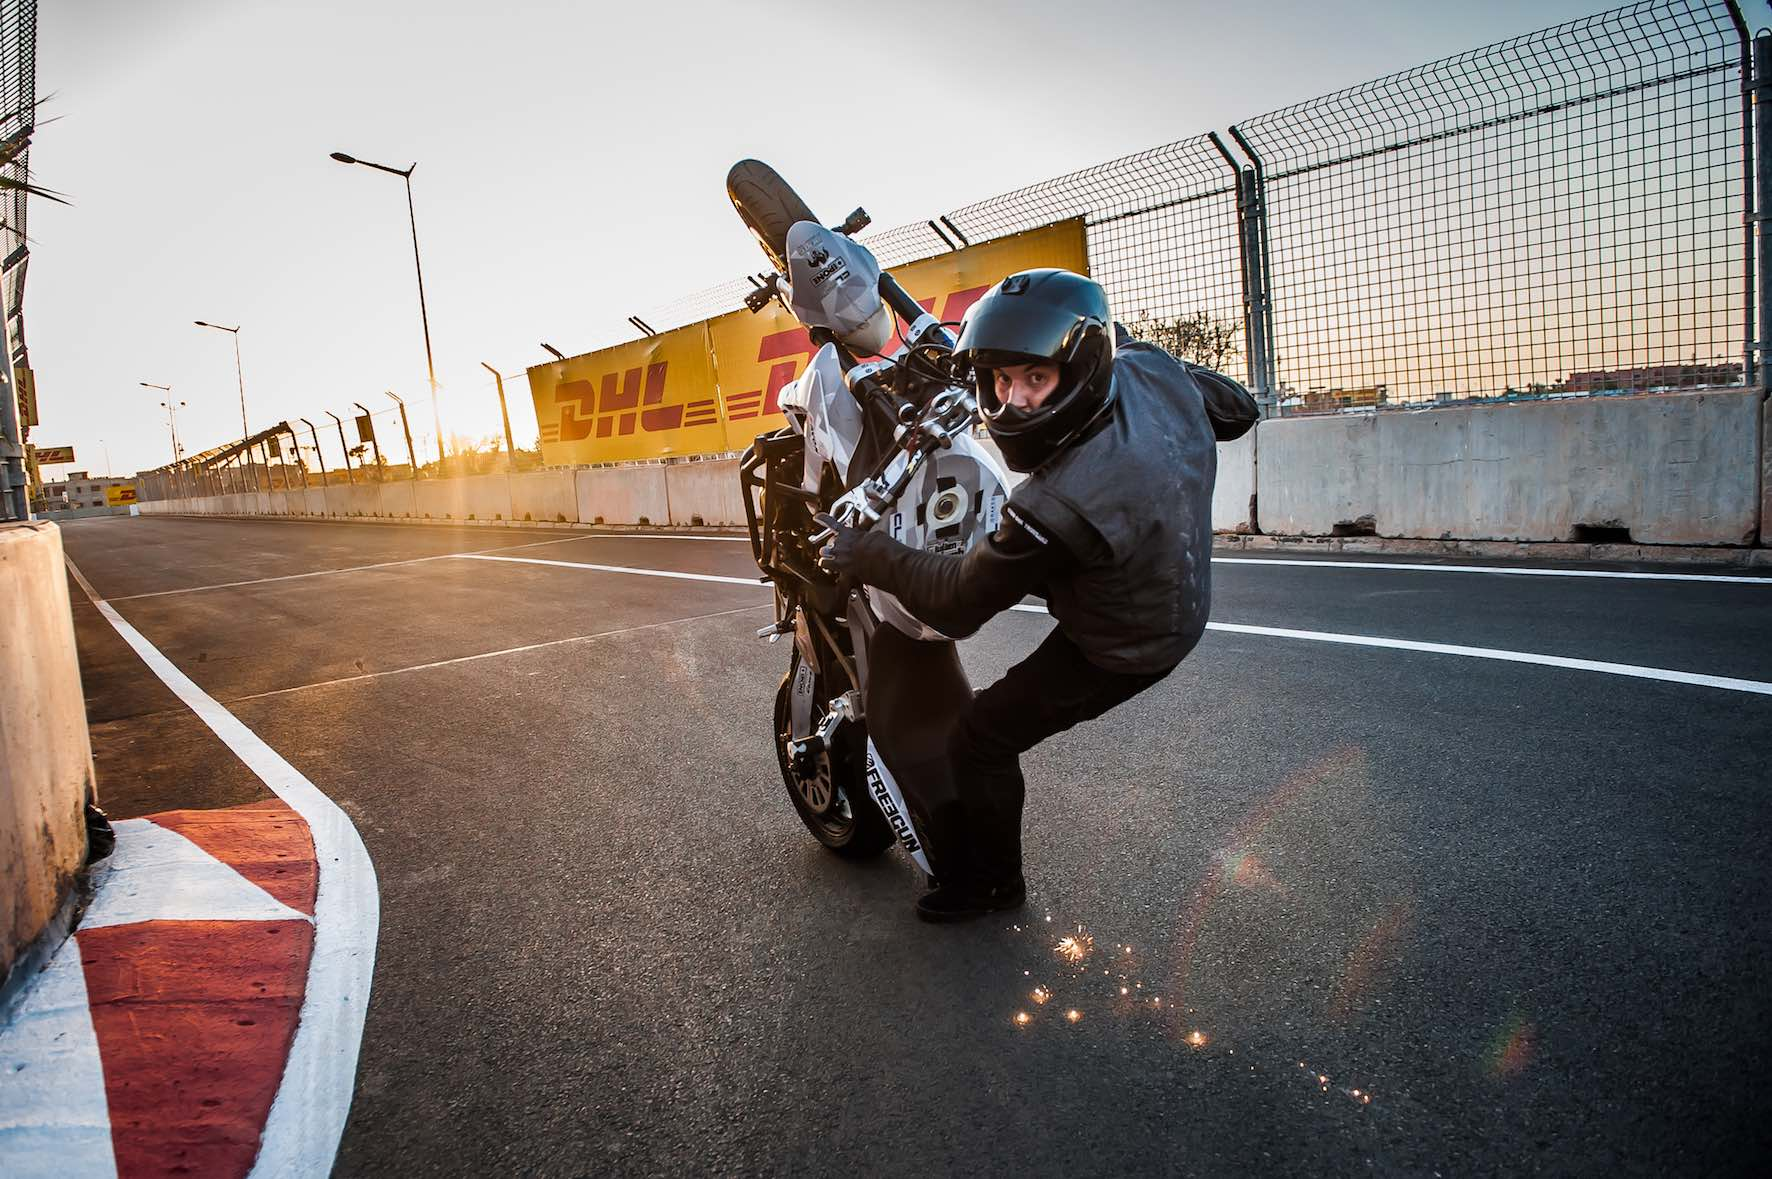 South Africa Bike Festival visitors can expect to see explosive freestyle performances per day from international Stunt & Wheelie Champion, Julien Welsch.